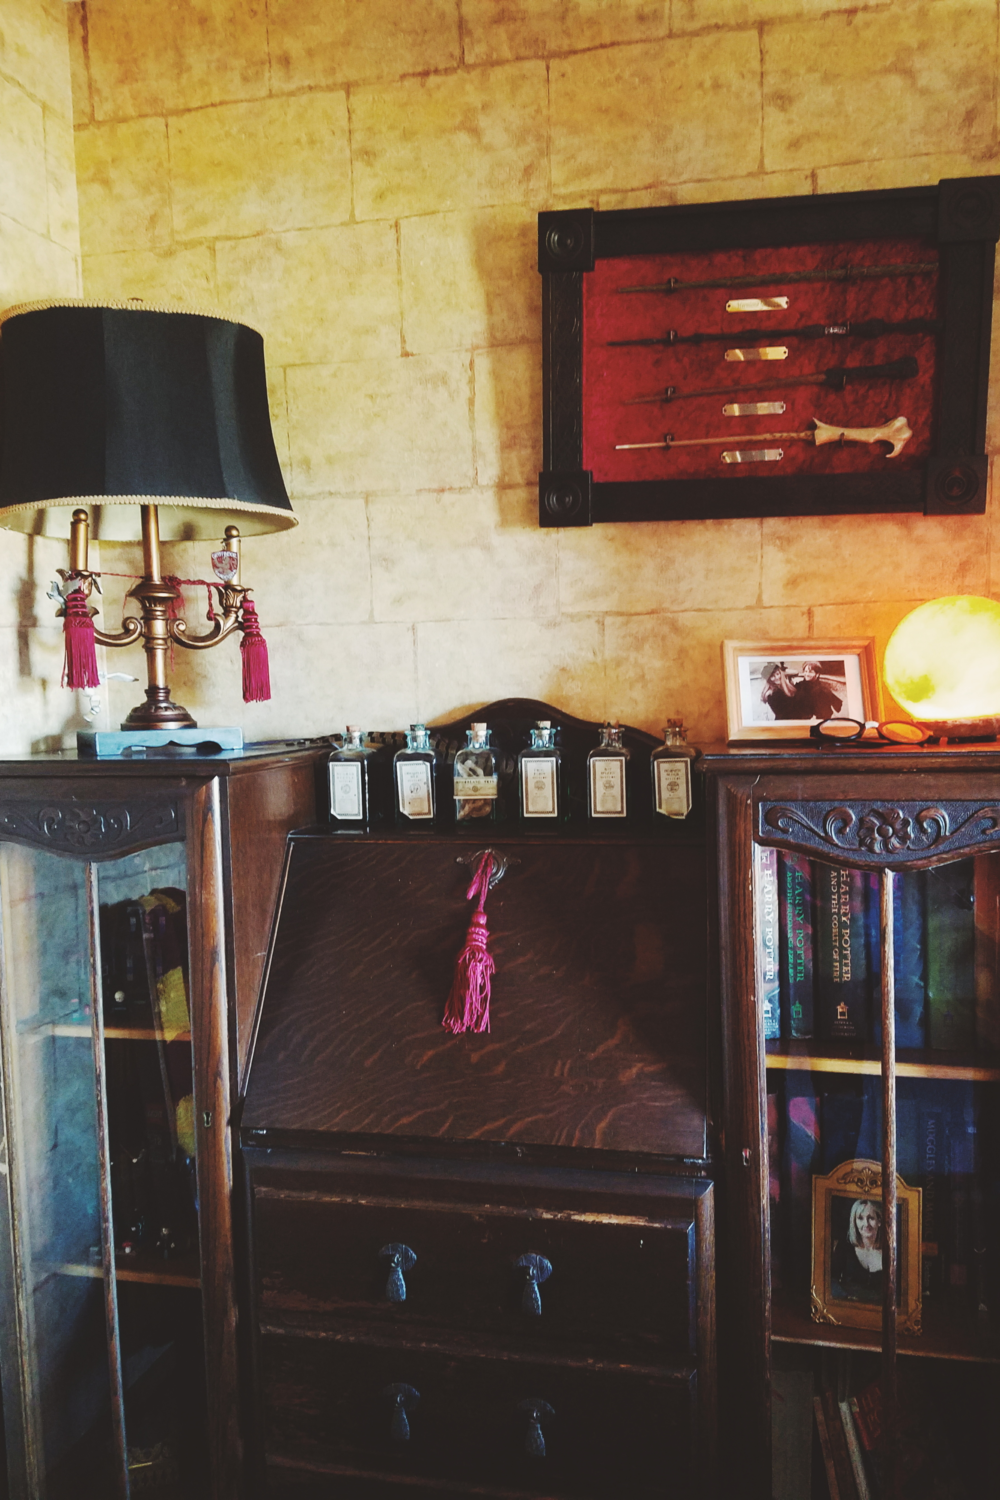 J. K. Rowling room - the closest to Hogwarts I'll ever get!